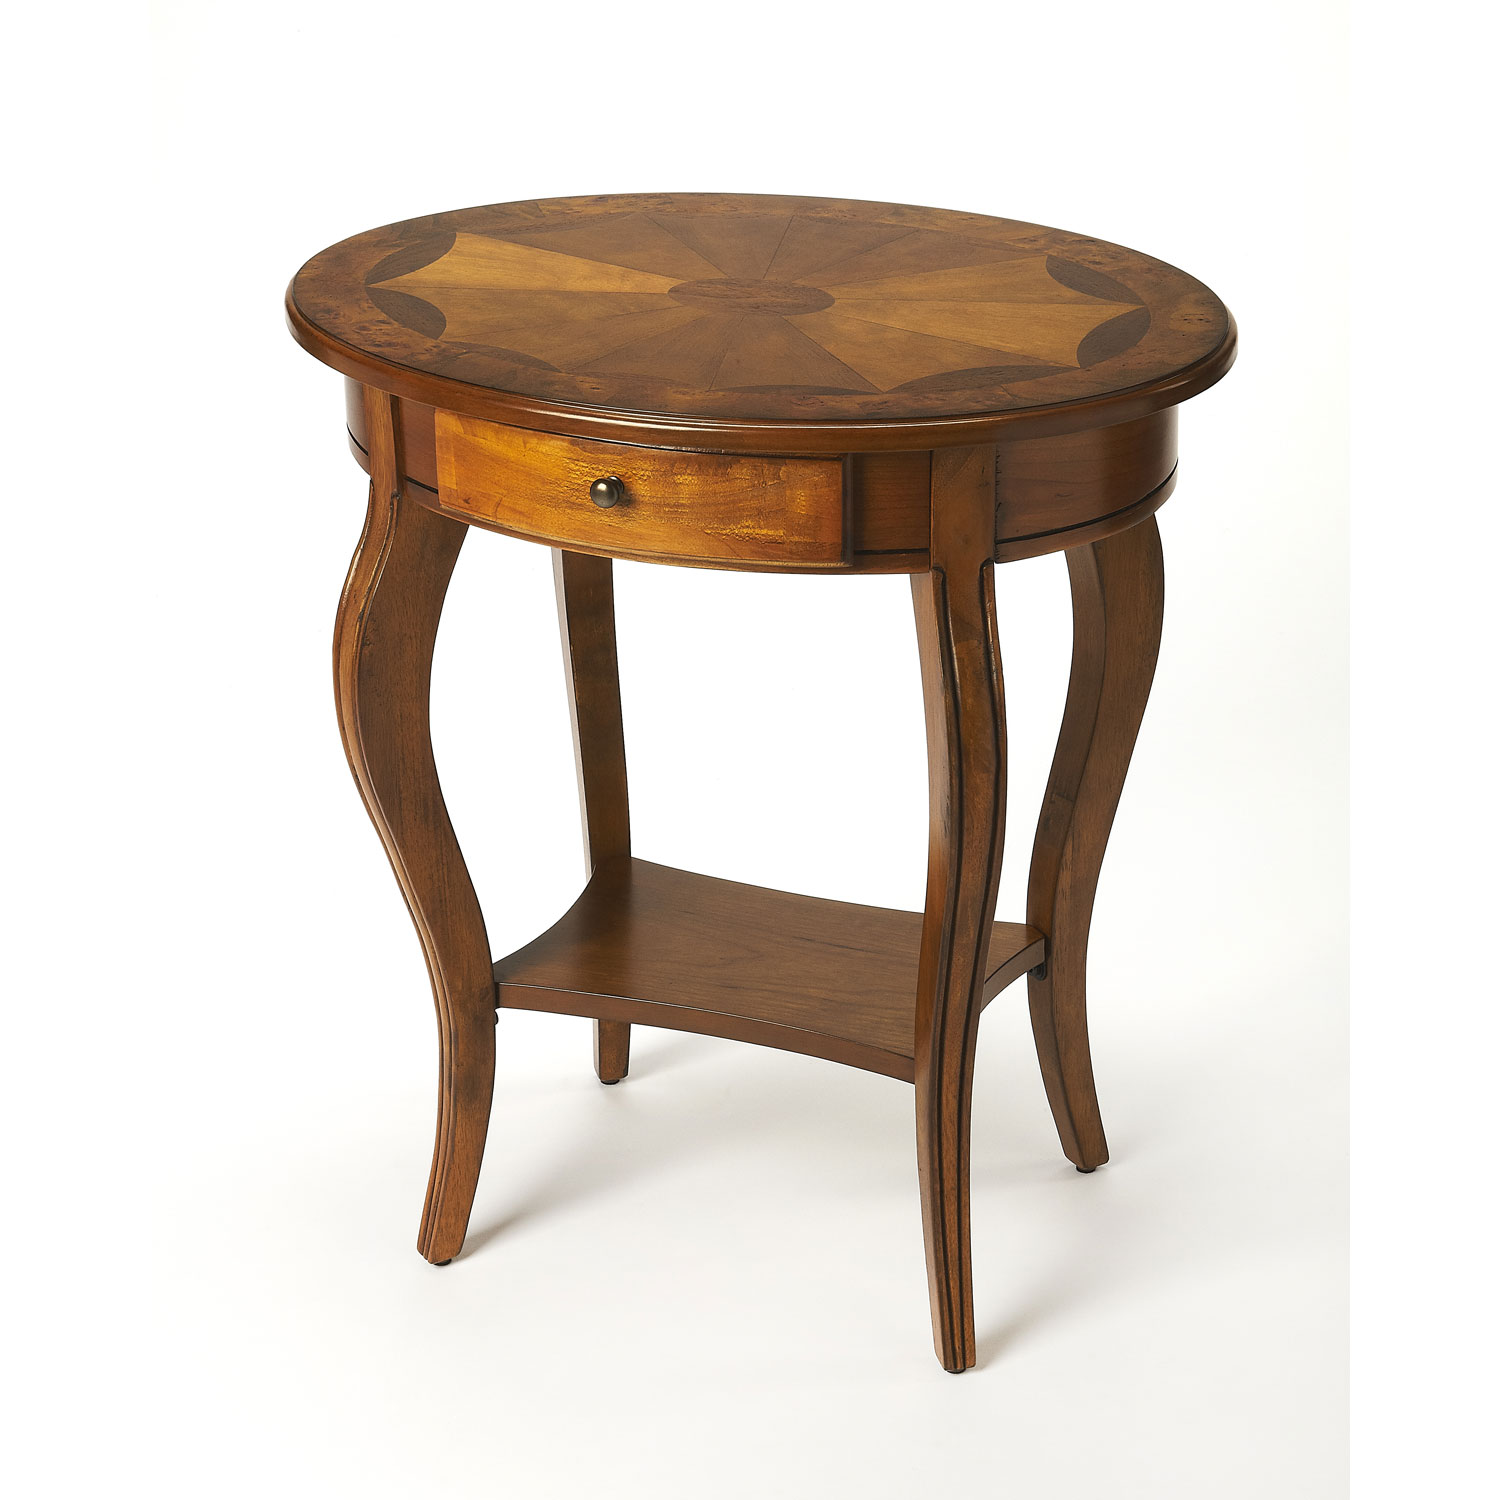 butler specialty company jeanette olive ash burl oval accent table twisted mango wood hover zoom round coffee cloth end tables from target inexpensive nightstands outdoor art